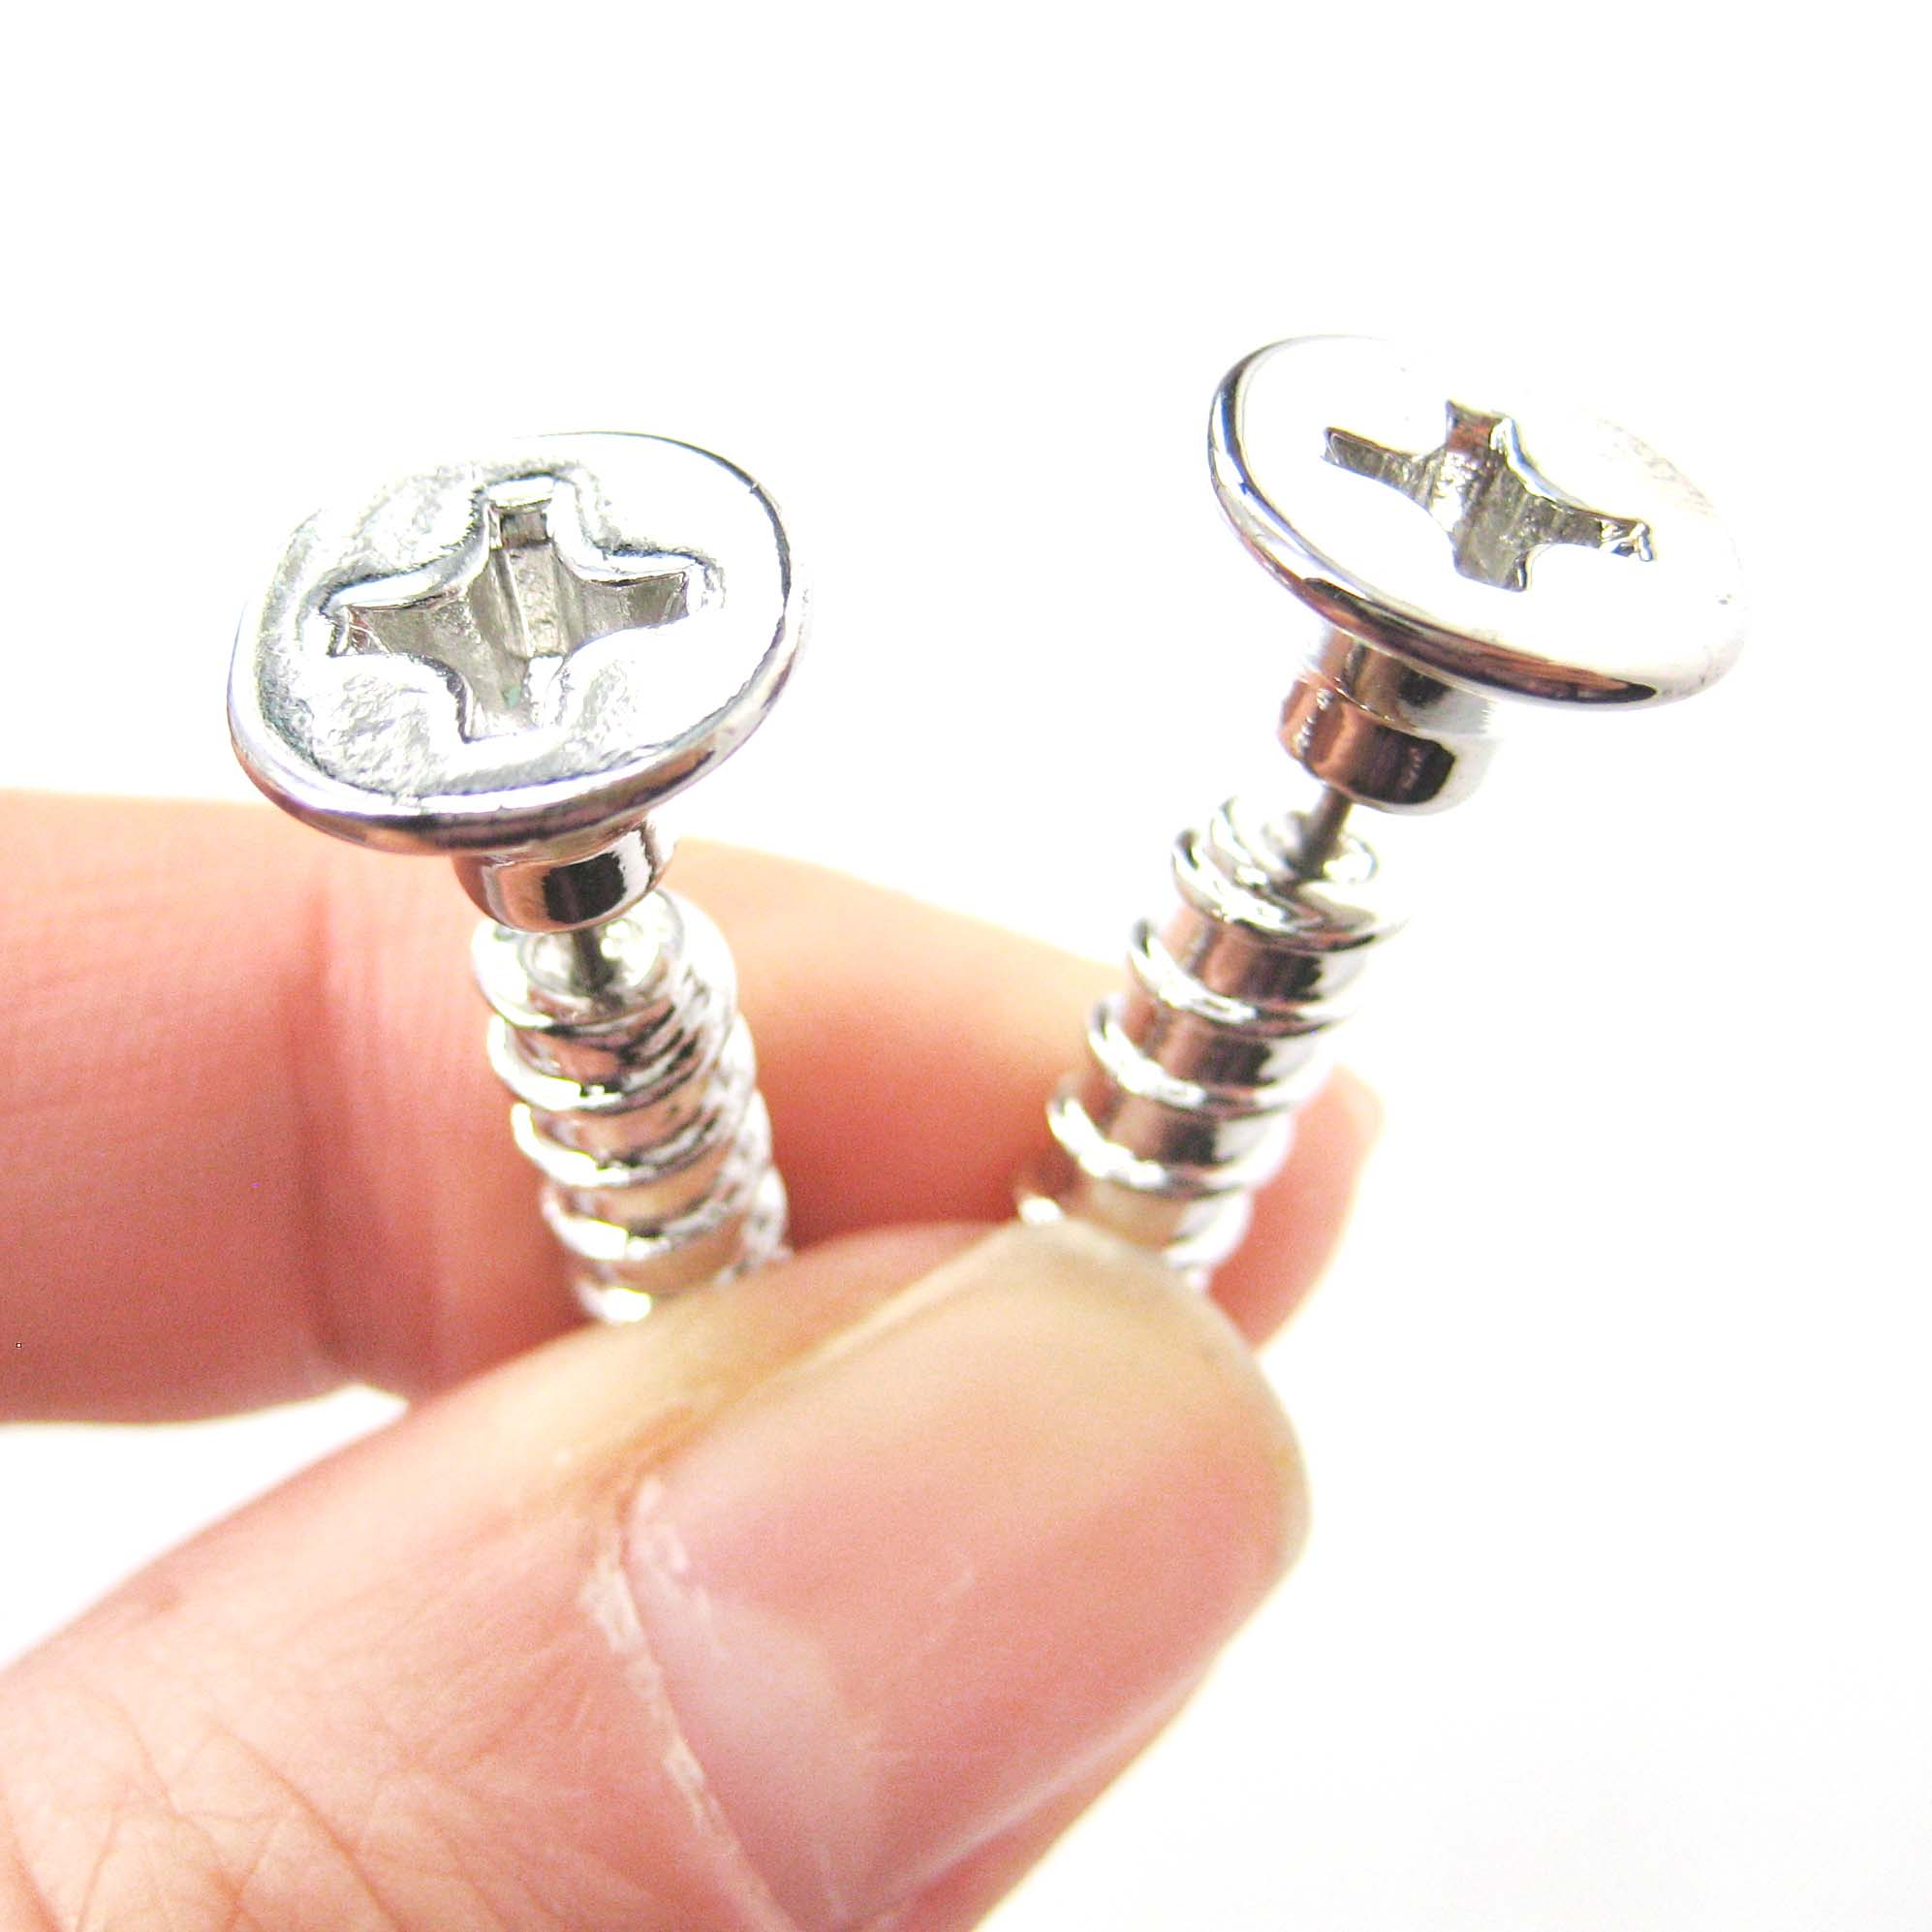 gauging jewelry 3d realistic nuts and bolts stud earrings 3529